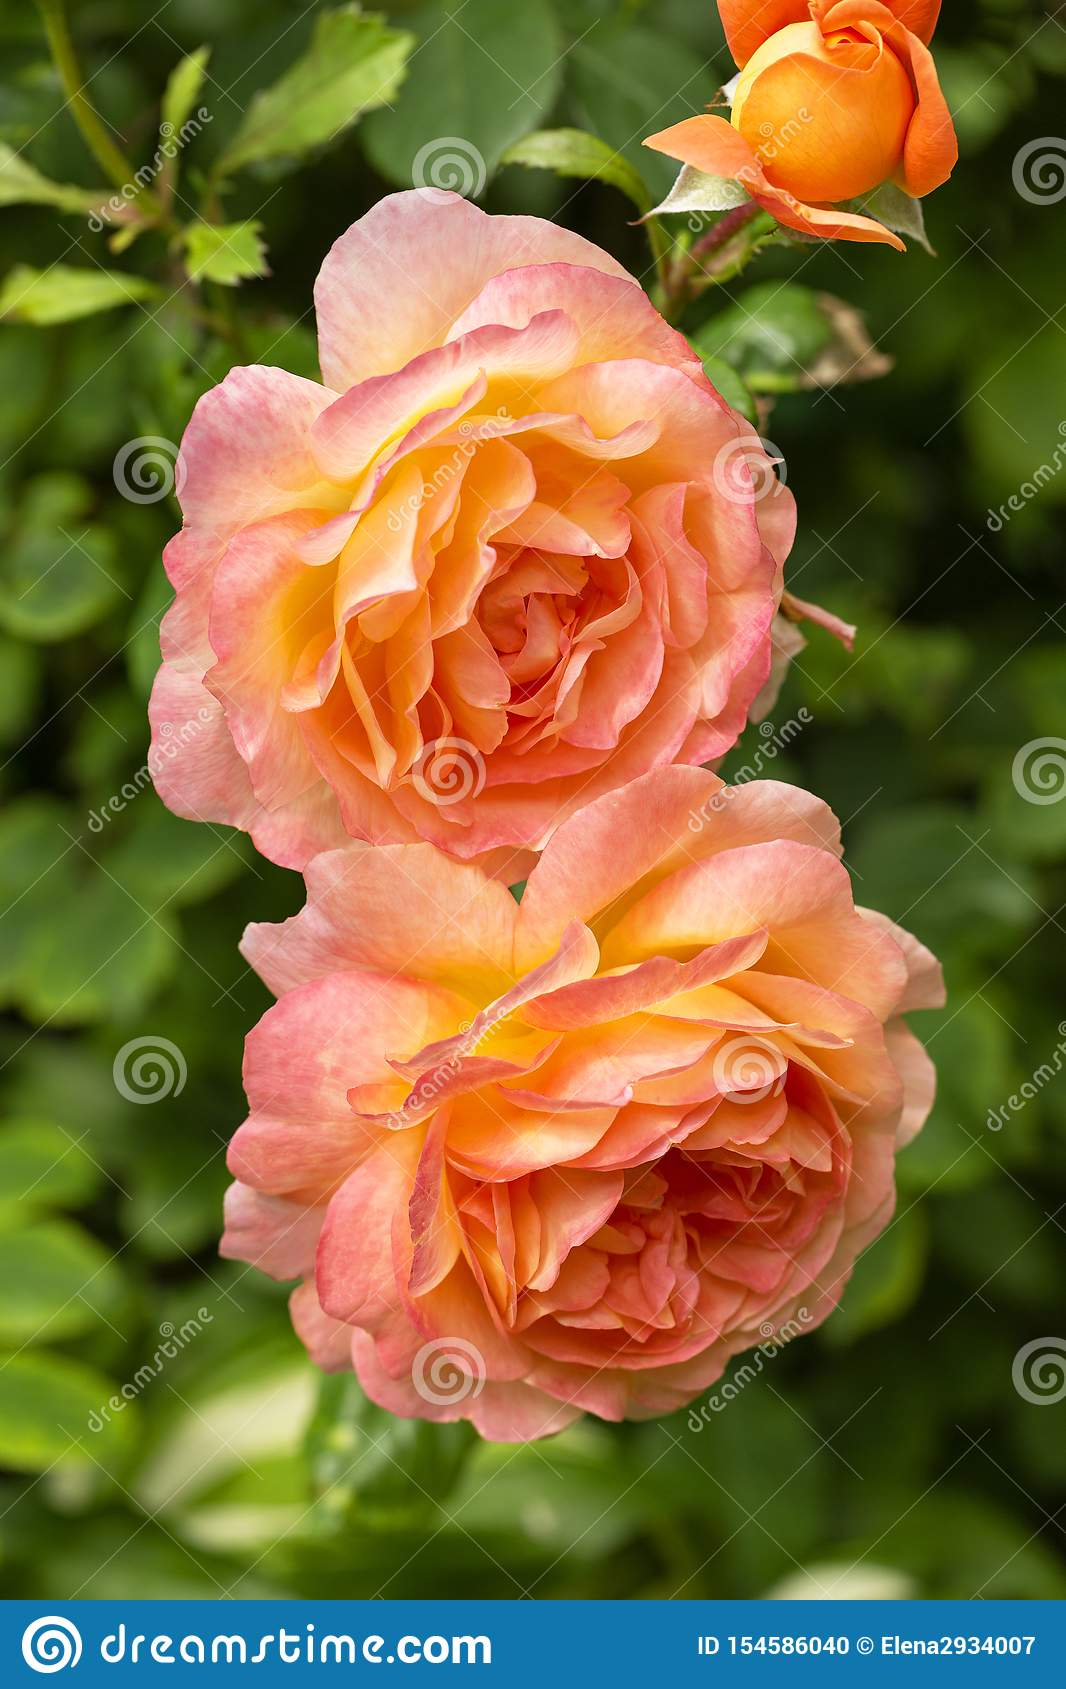 Beautiful, delicate colorful roses in the garden. Blooming orange English roses on a sunny day.